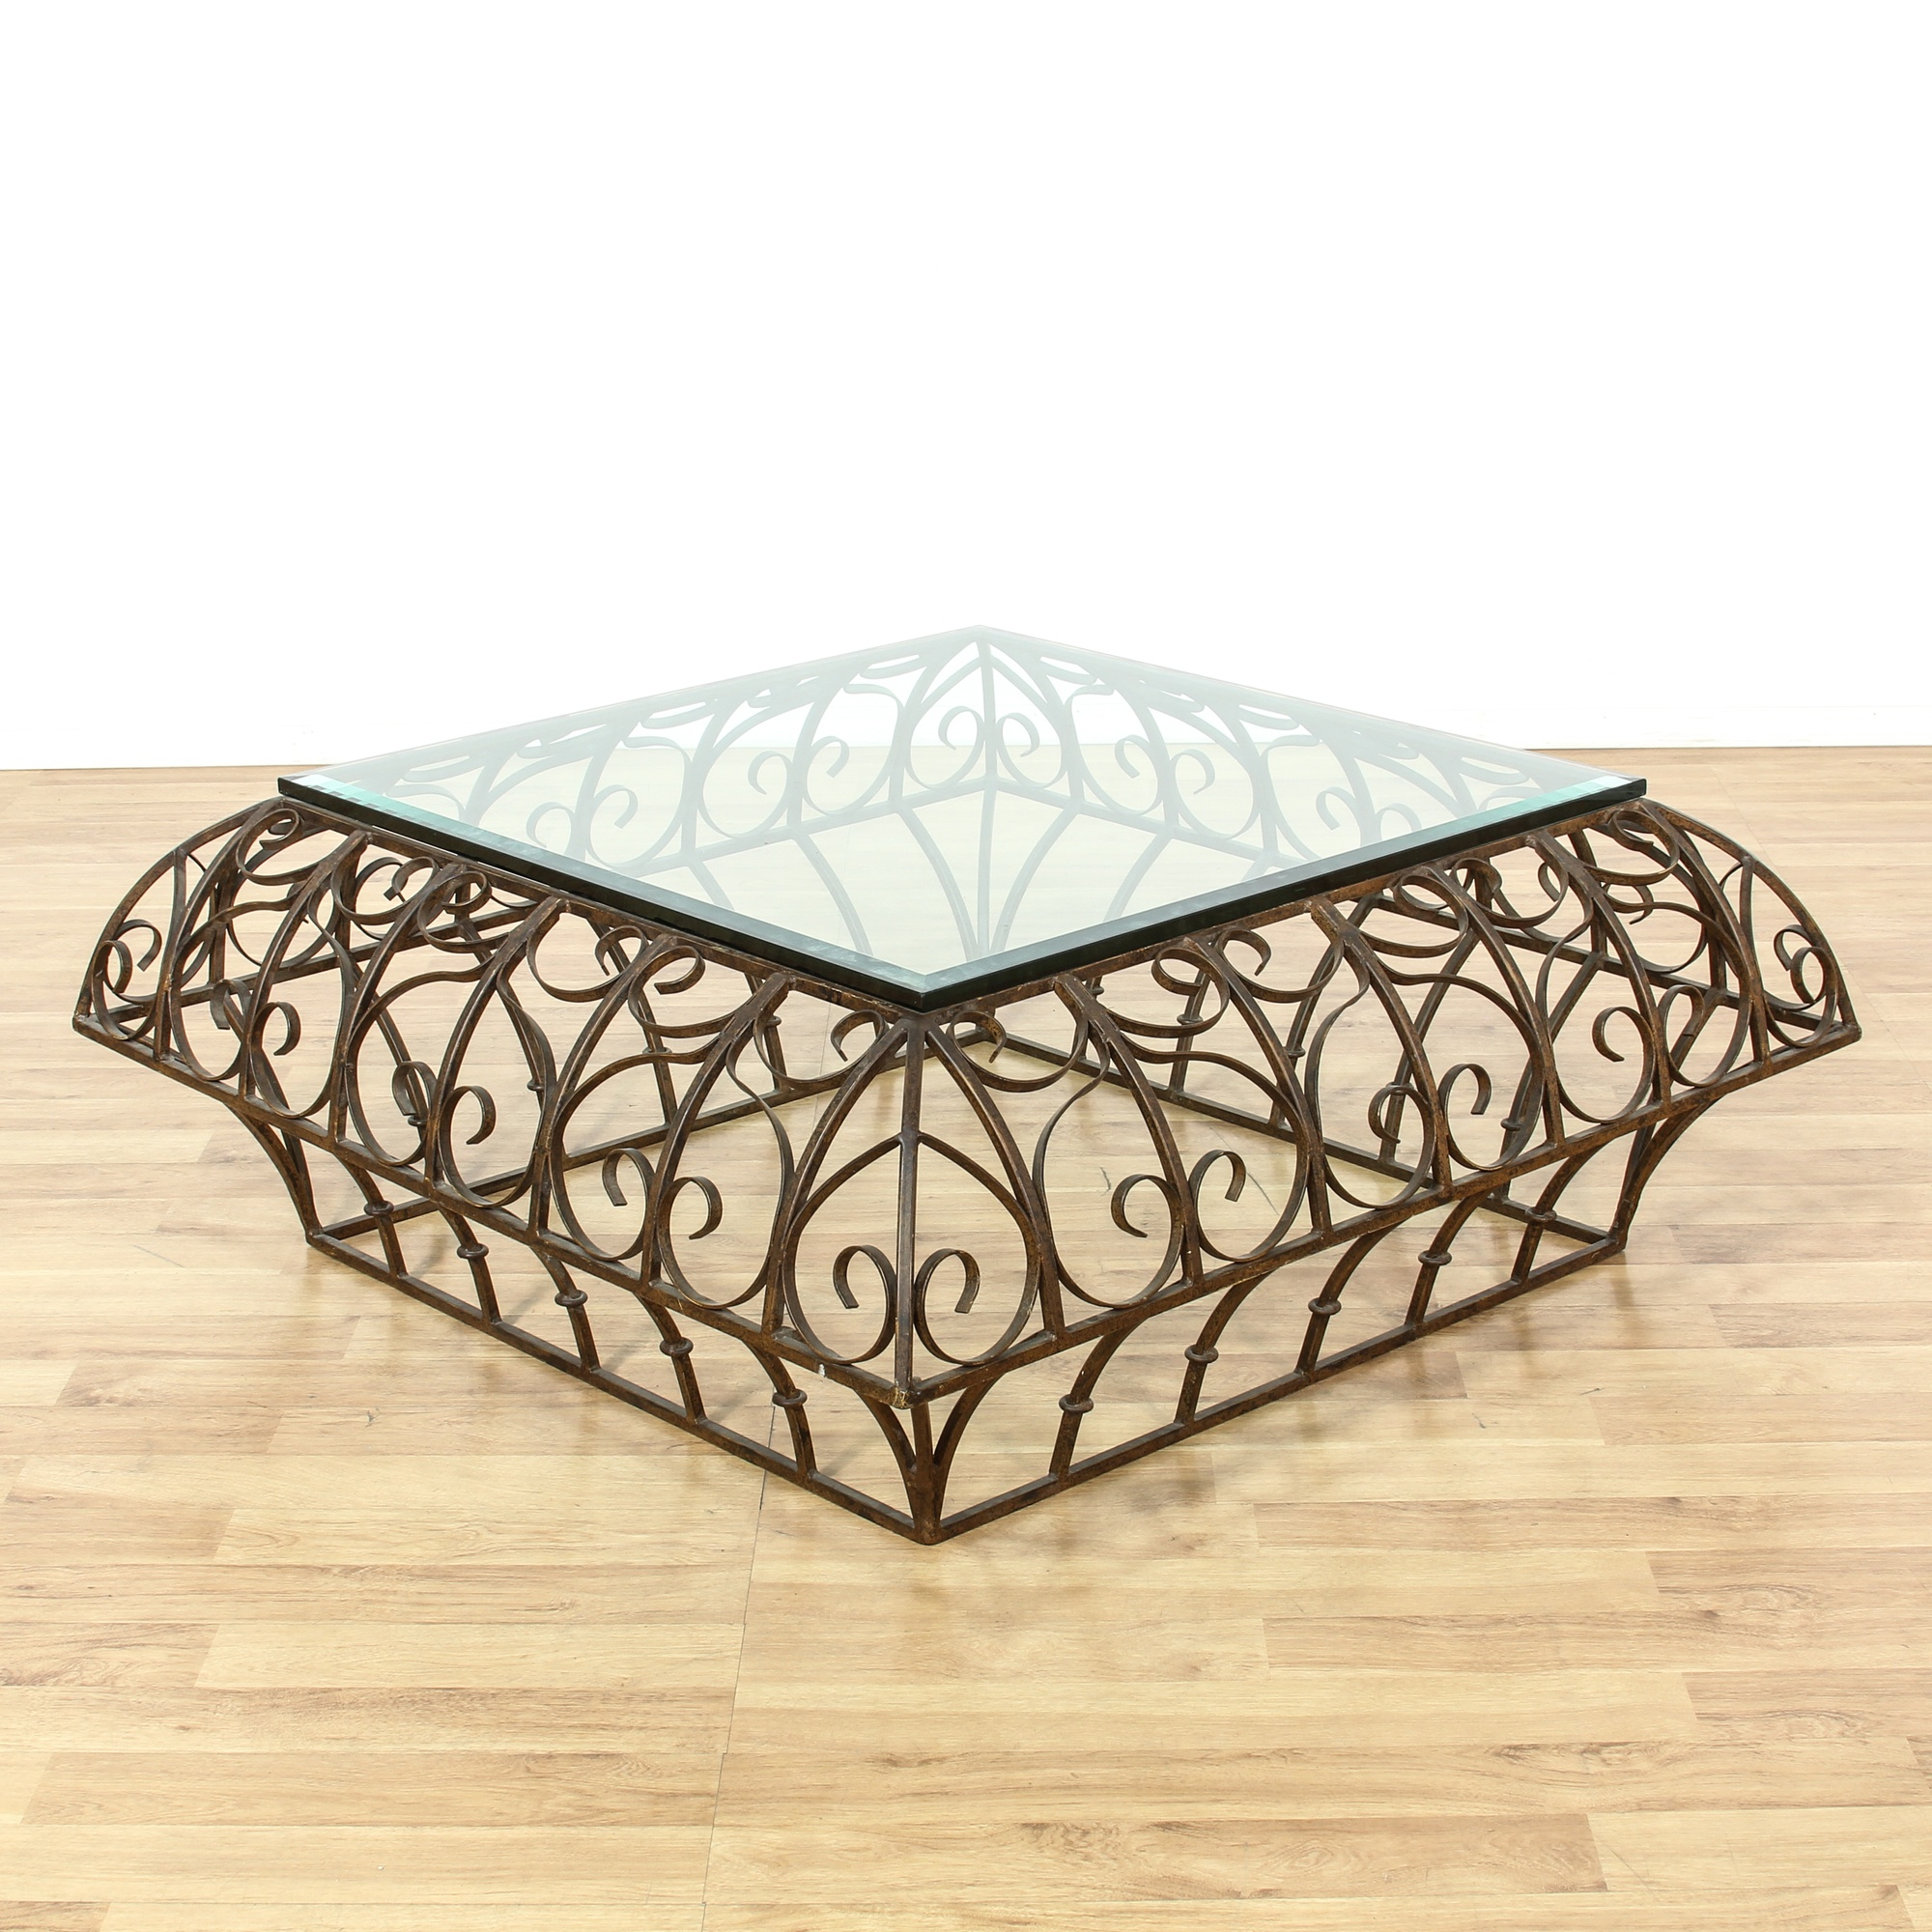 Bronze And Glass Coffee Table: Scrolled Bronze Iron Glass Top Coffee Table